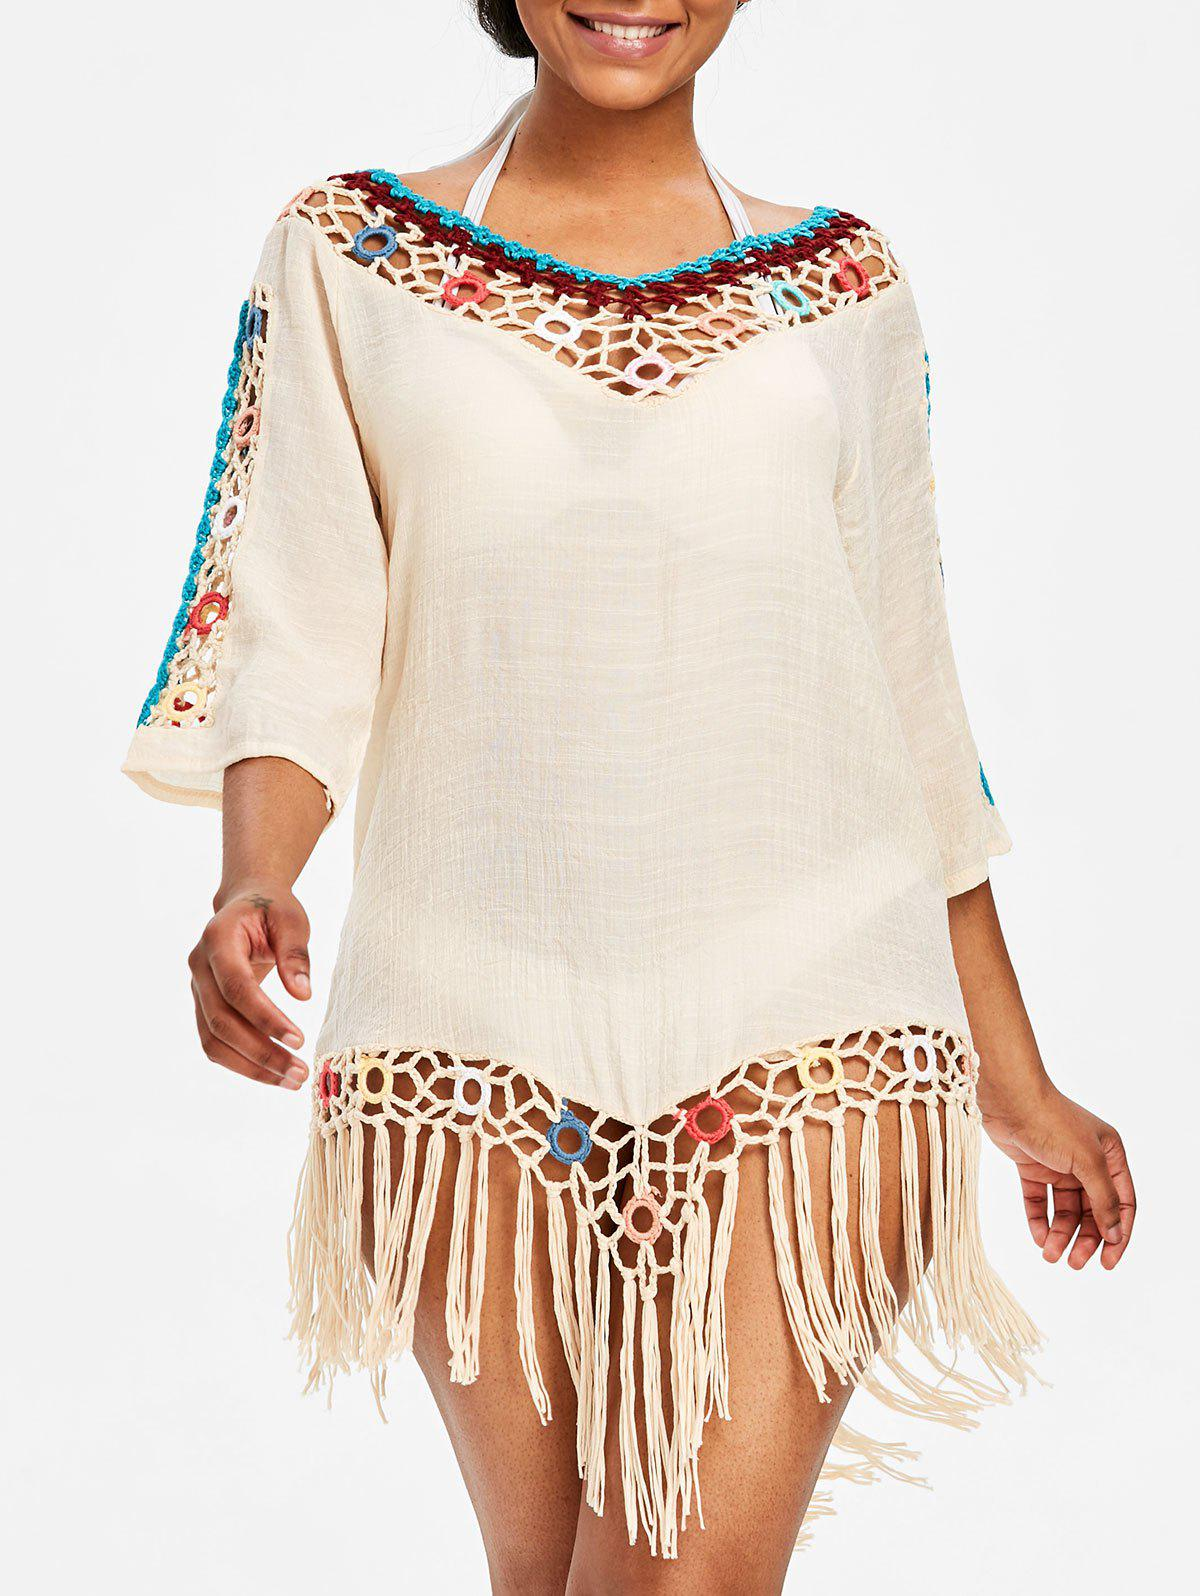 Chic Fringed Beach Crochet Panel Cover Up Dress